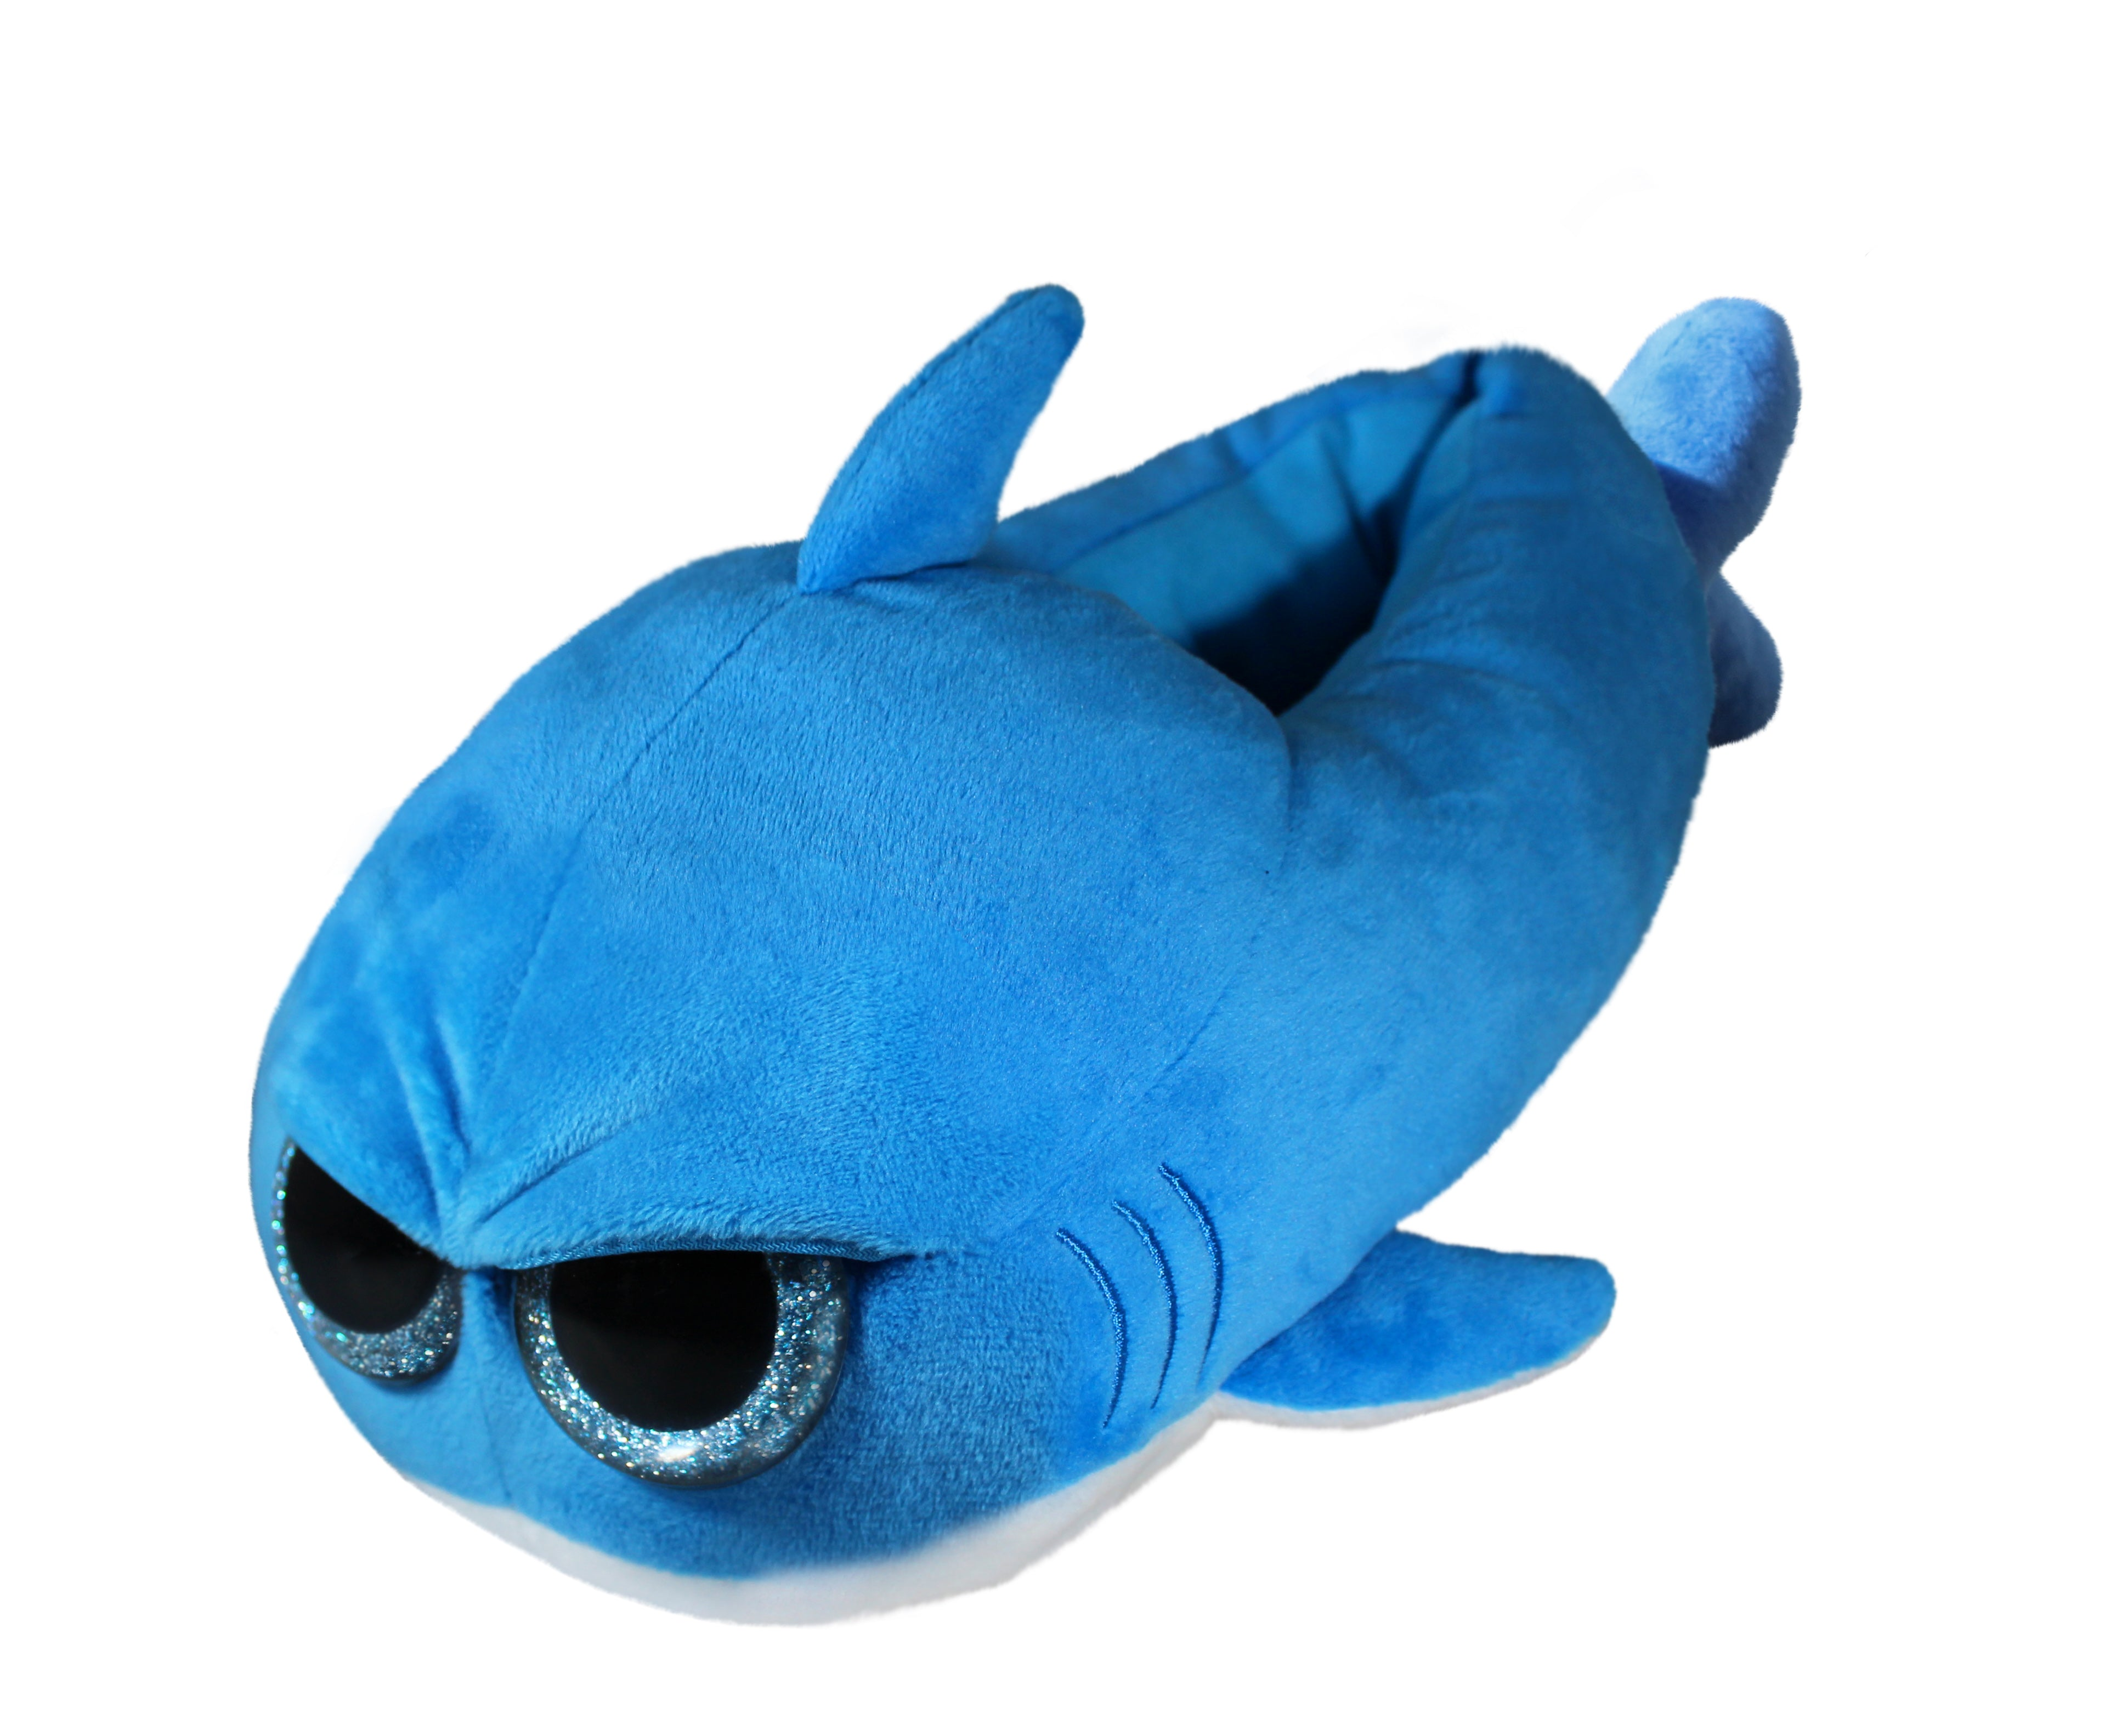 Little Grumpy Sharks - Cutest Funniest Plush Slippers for Adults, Grownups and Kids - Soft and Comfy Blue